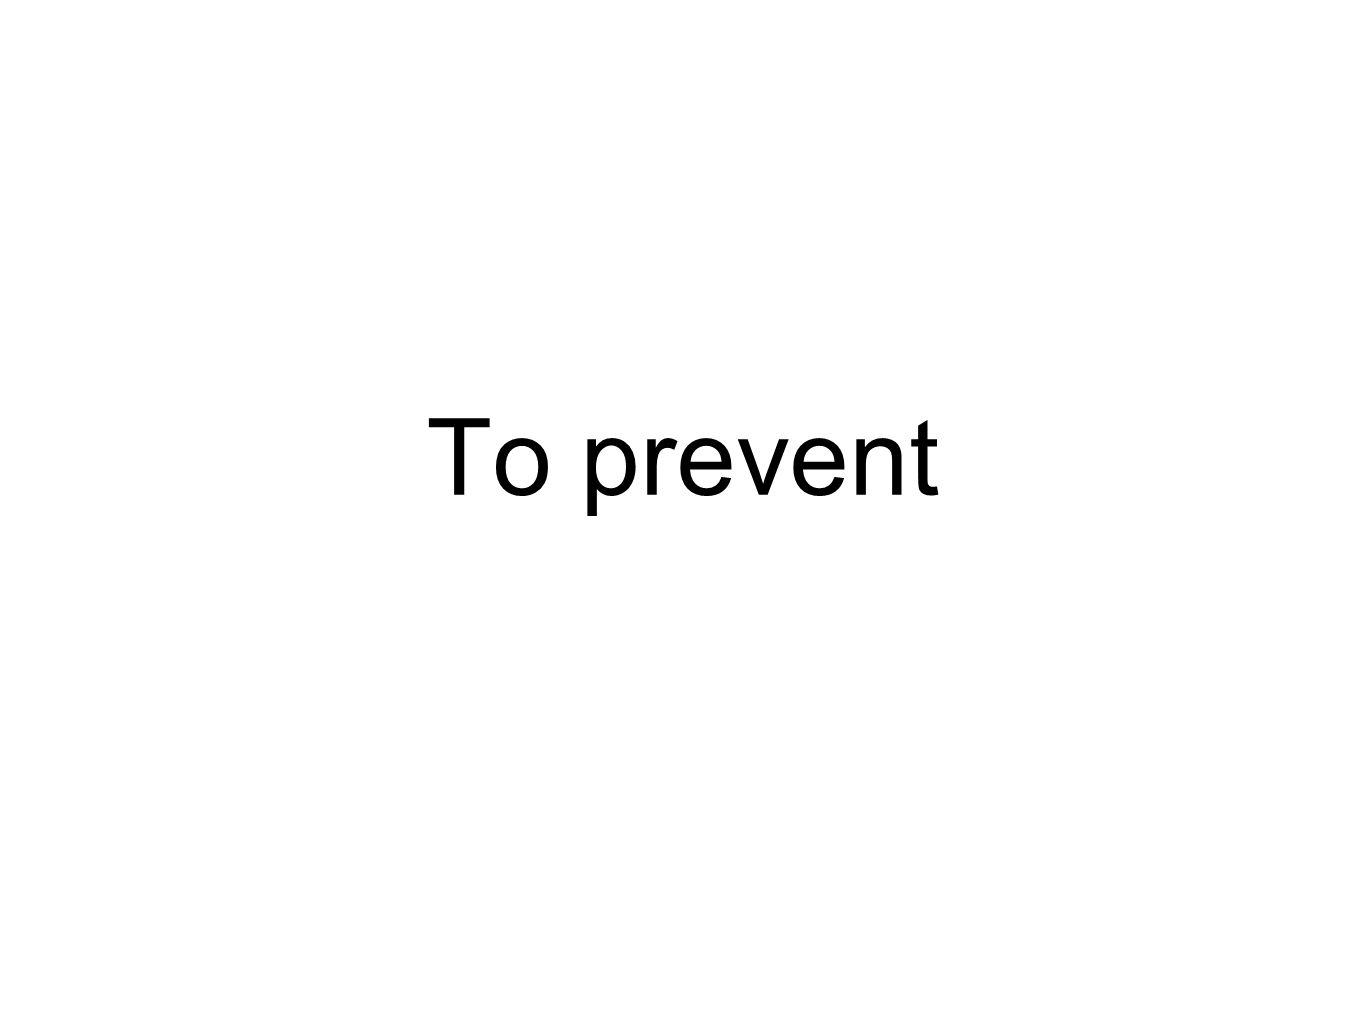 To prevent